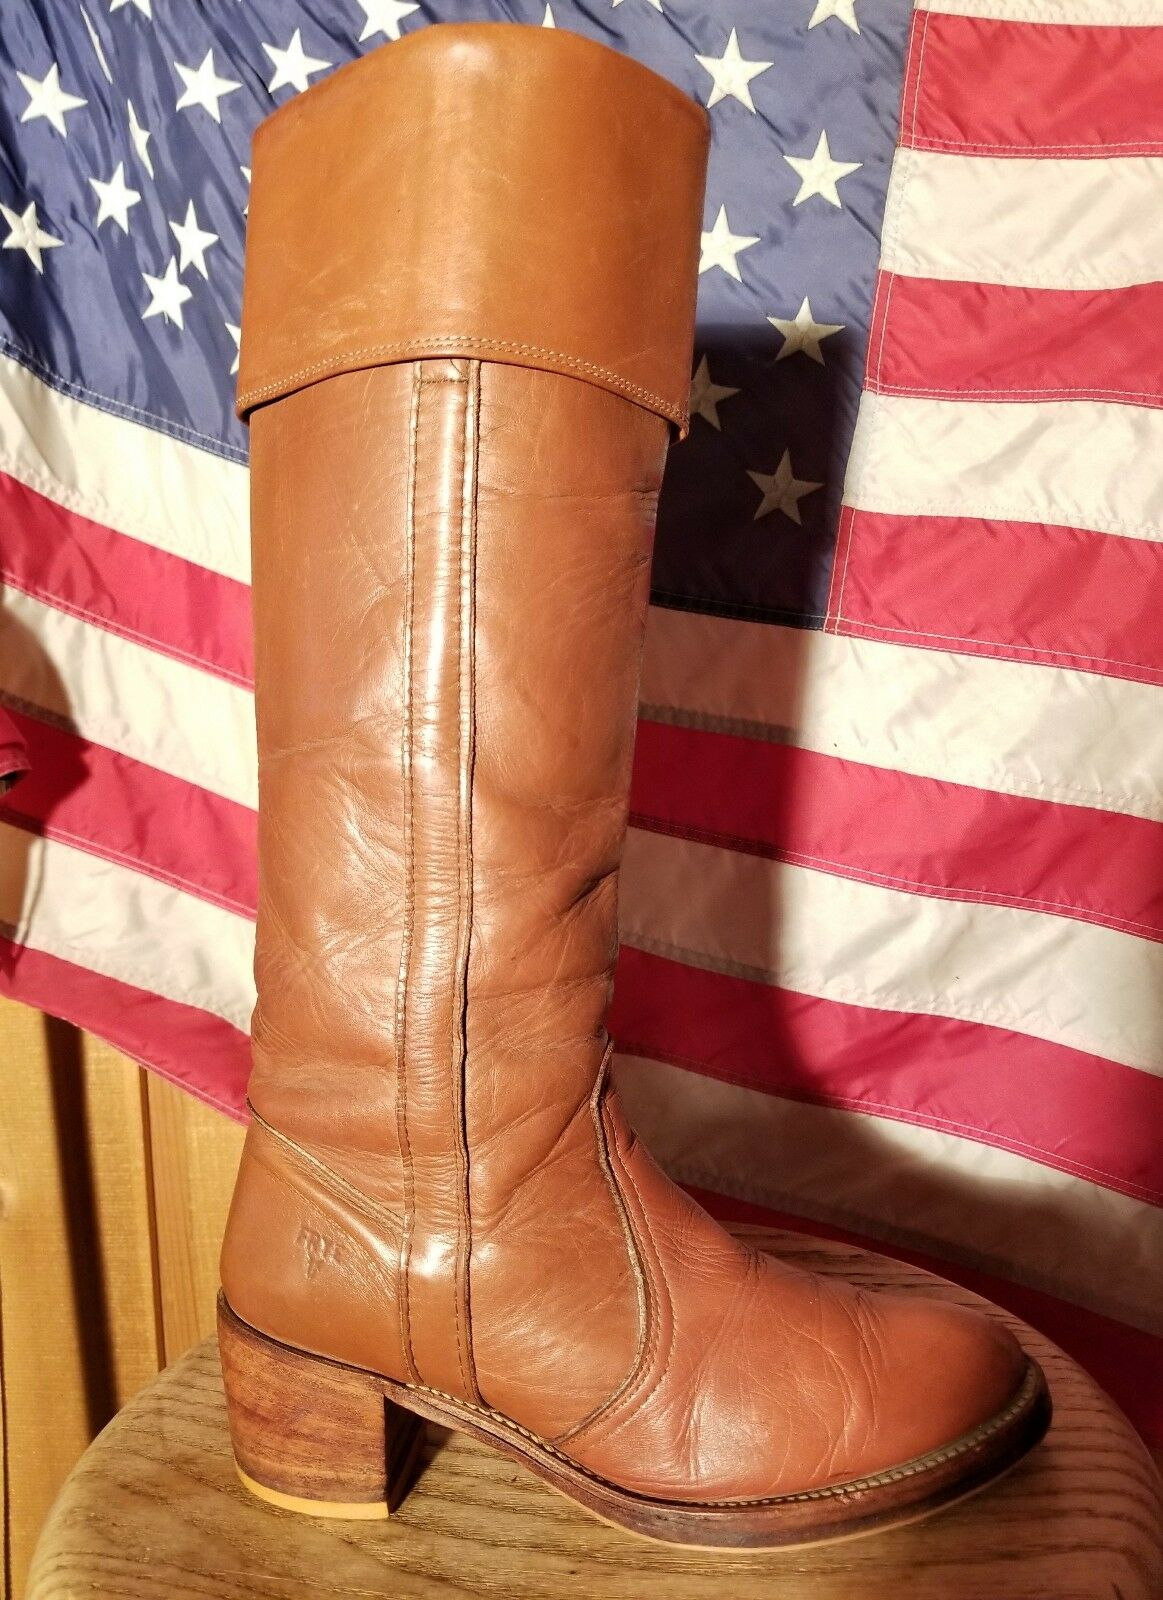 GORGEOUS TALL VINTAGE FRYE CAMPUS CUFF BOOT SIZE 7.5 TIME WORN CARAMEL LEATHER